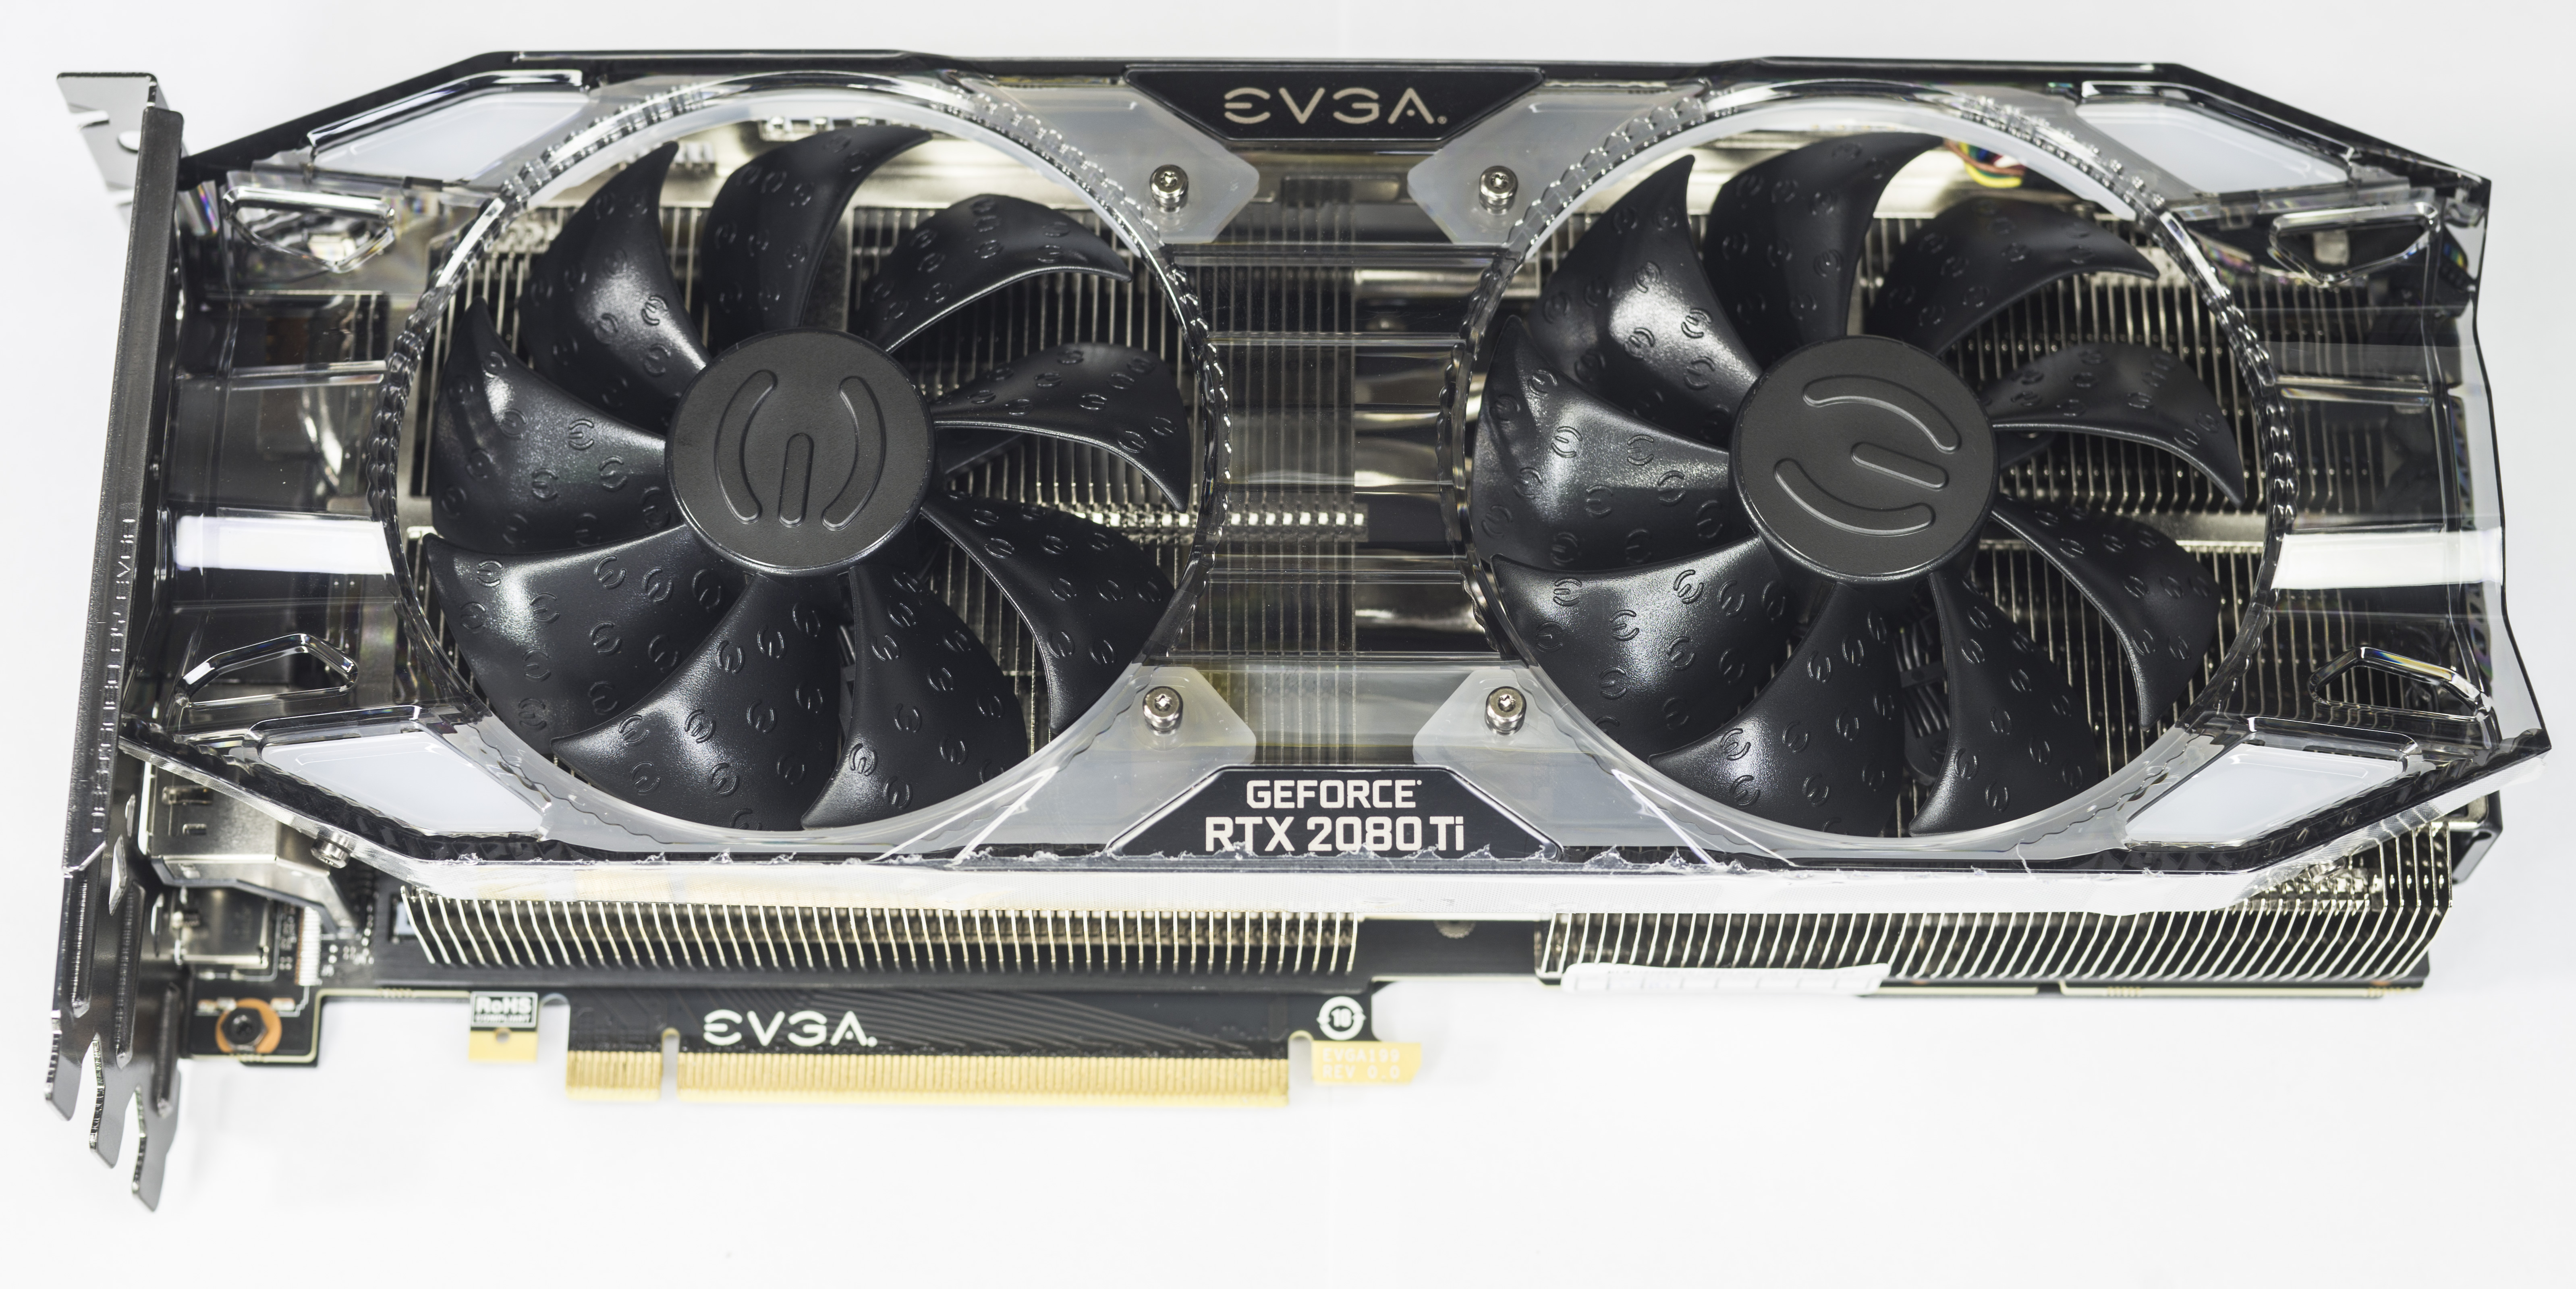 xDevs com | Teardown of the EVGA GeForce RTX 2080 Ti XC Ultra